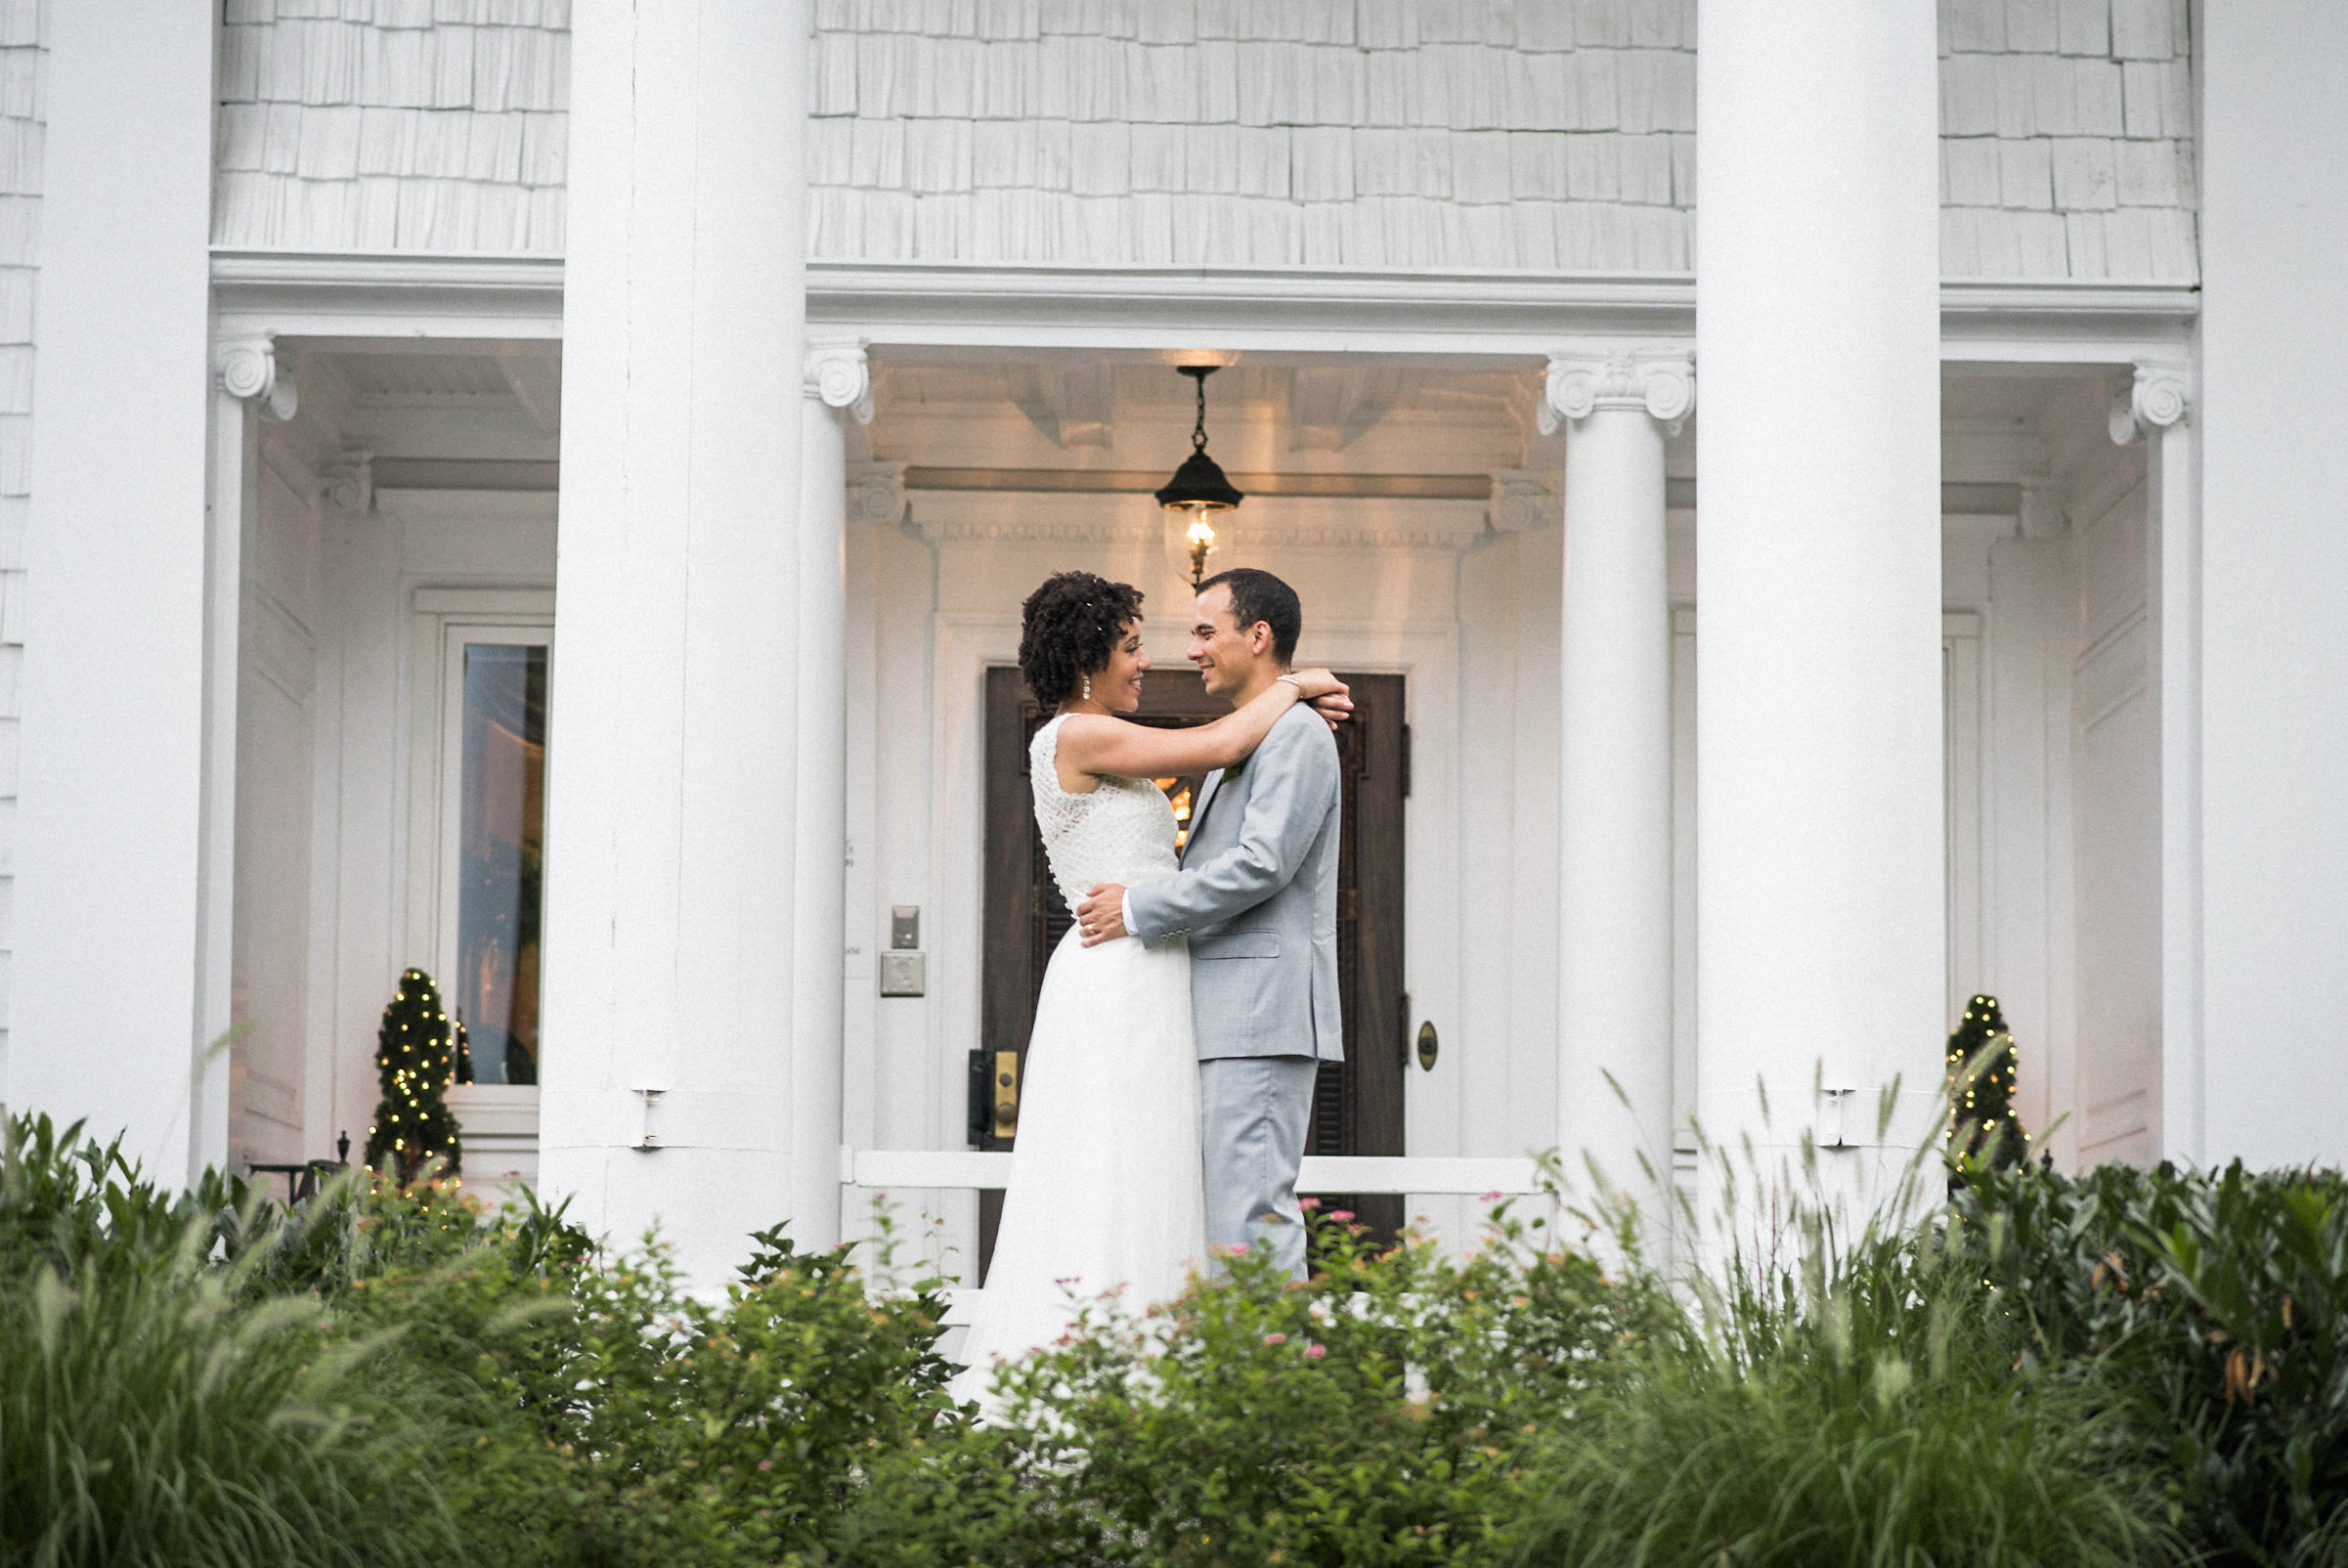 Bride and groom standing between columns